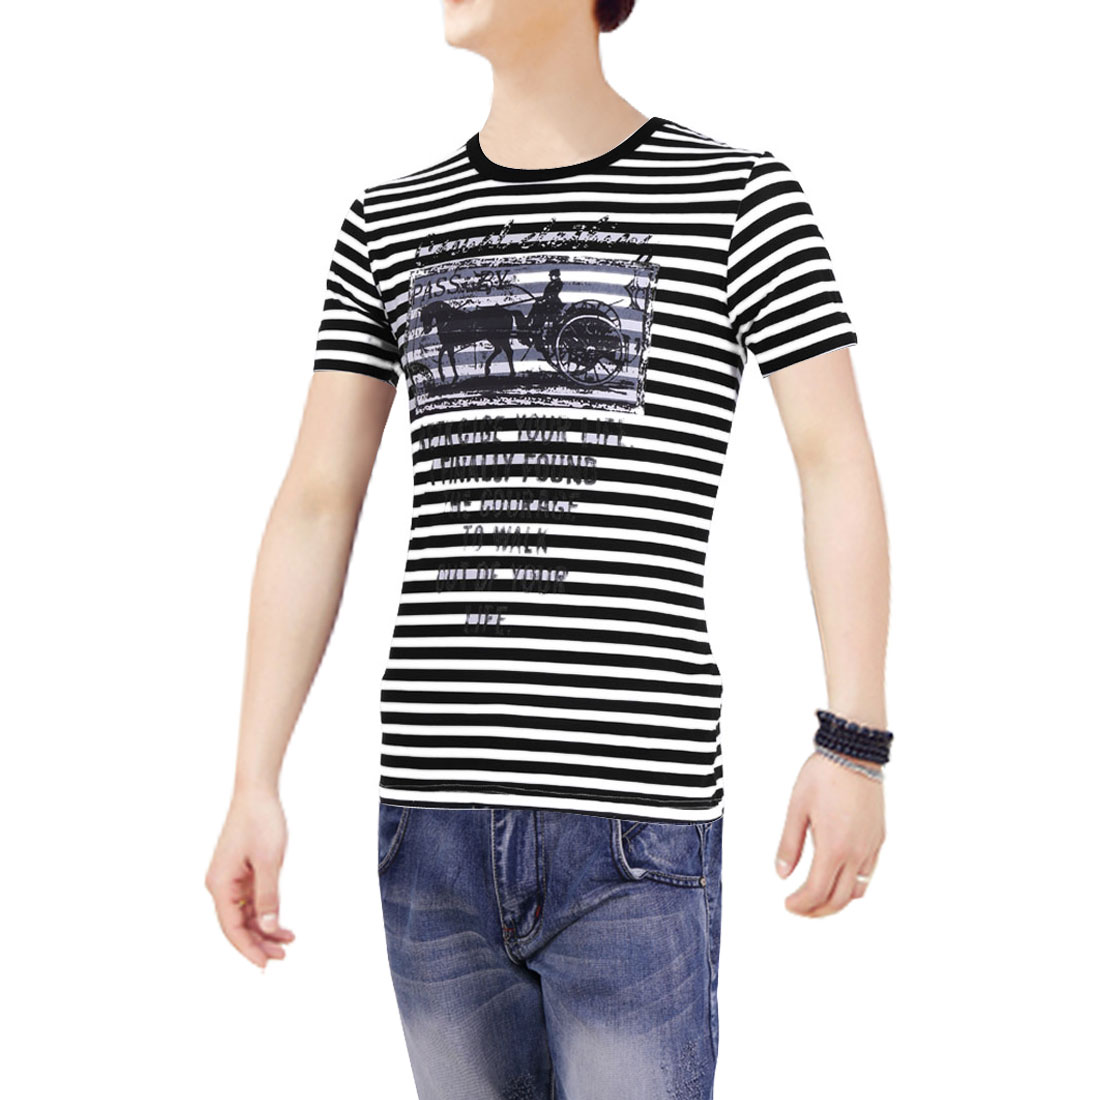 Stripes Prints Round Neck Pullover Style Fit T-Shirt for Men Black M